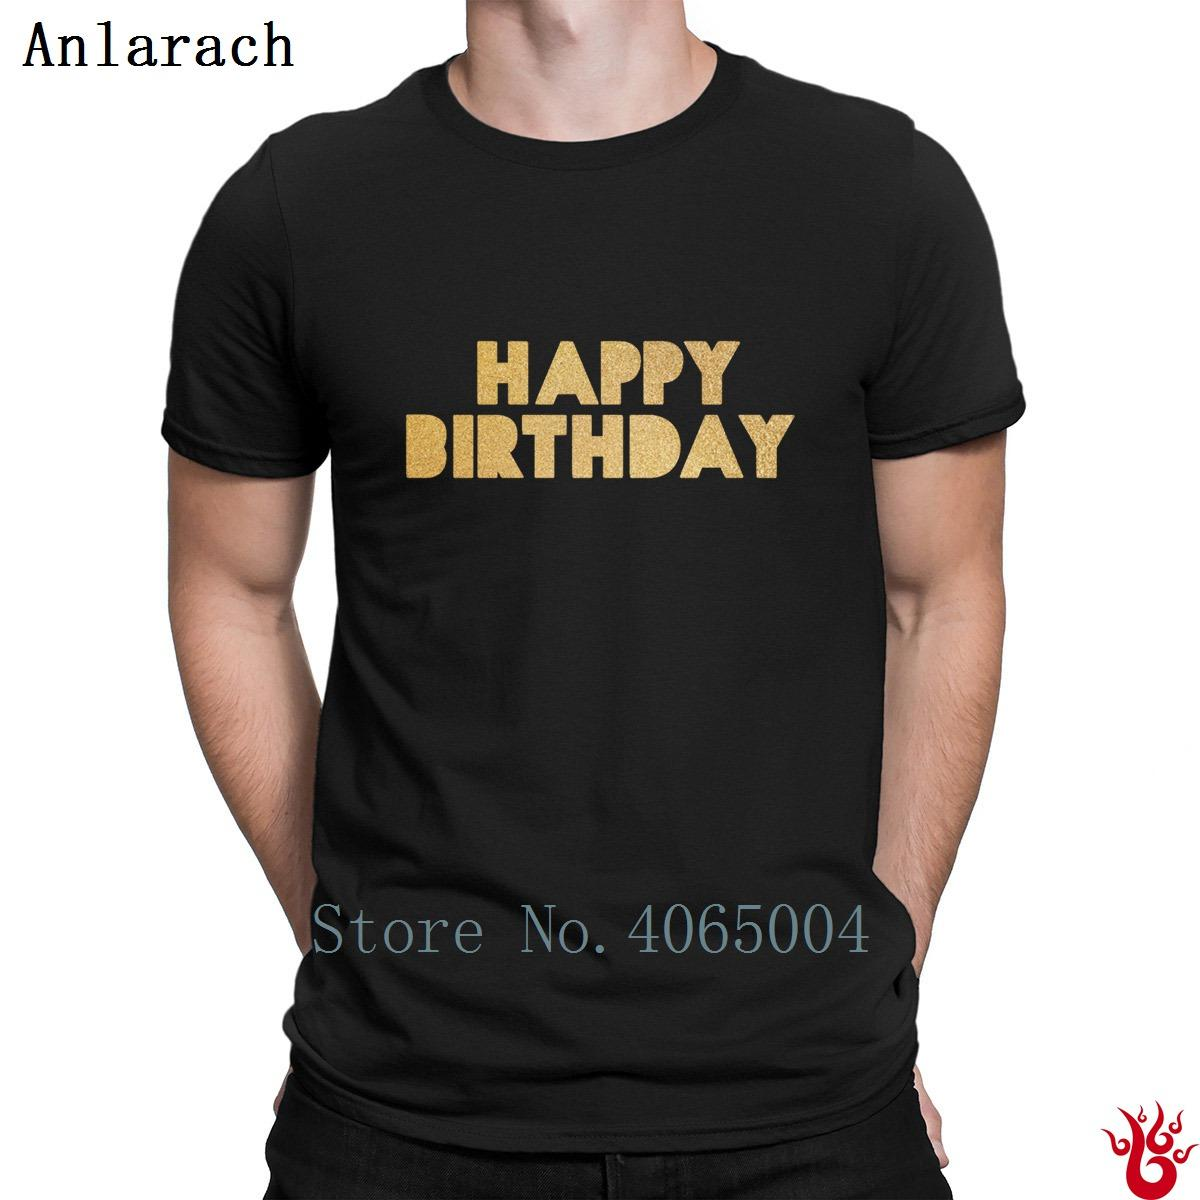 Happy Birthday Tshirts Trend Short Sleeve Character Pop Top Tee T Shirt For Men 2018 Fit Building Crew Neck Novelty Good Design Latest